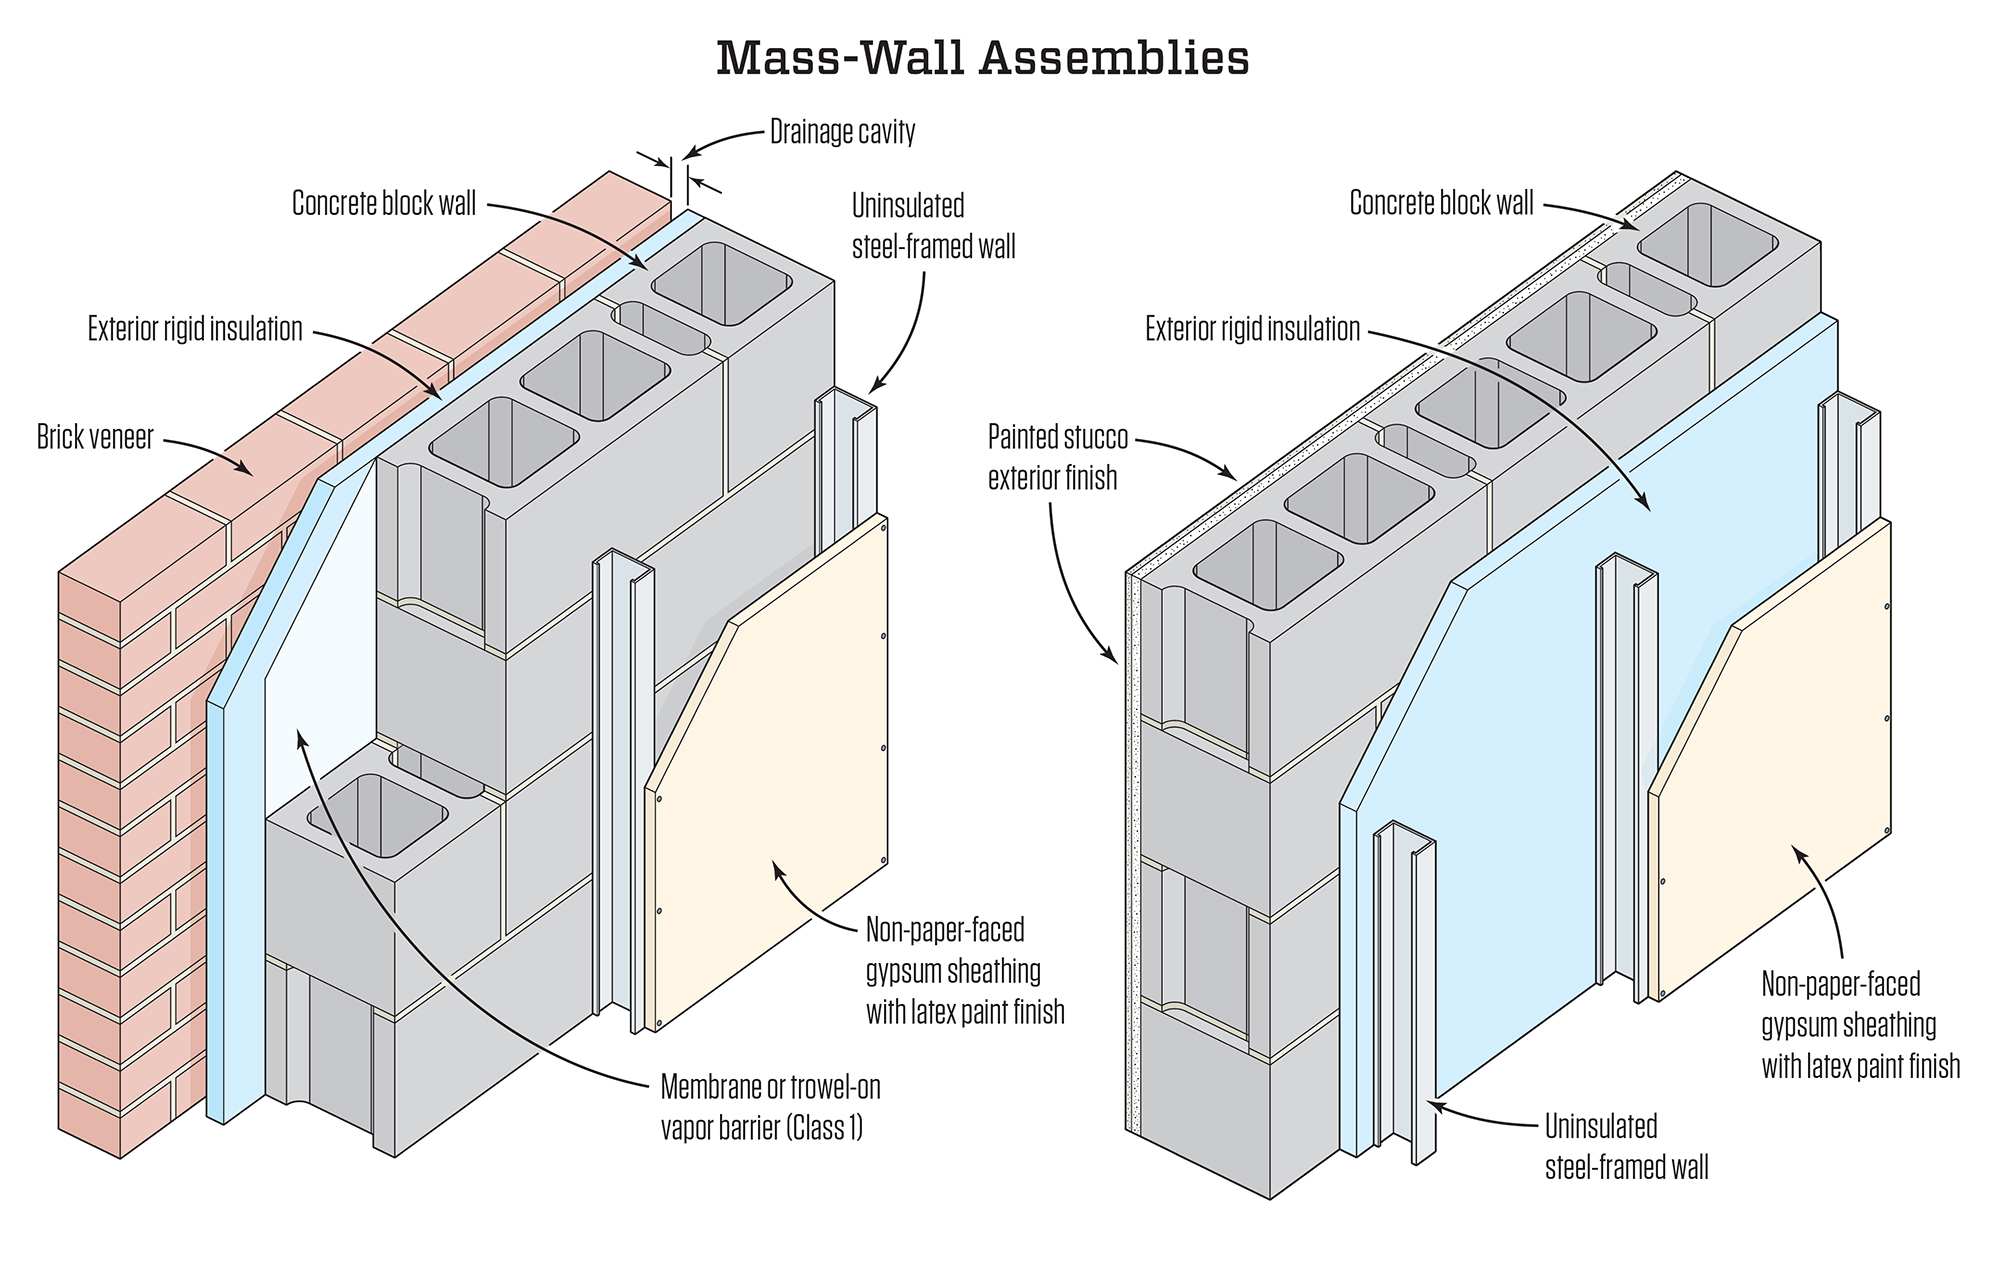 Flood Hardy Wall Construction Jlc Online Walls And Ceilings Electrical Wiring In Cinder Block Tim Healey Masonry Mass Assemblies Proposed By Joe Lstiburek After Hurricane Katrina Are Reminiscent Of Traditional Structures Seen Historic